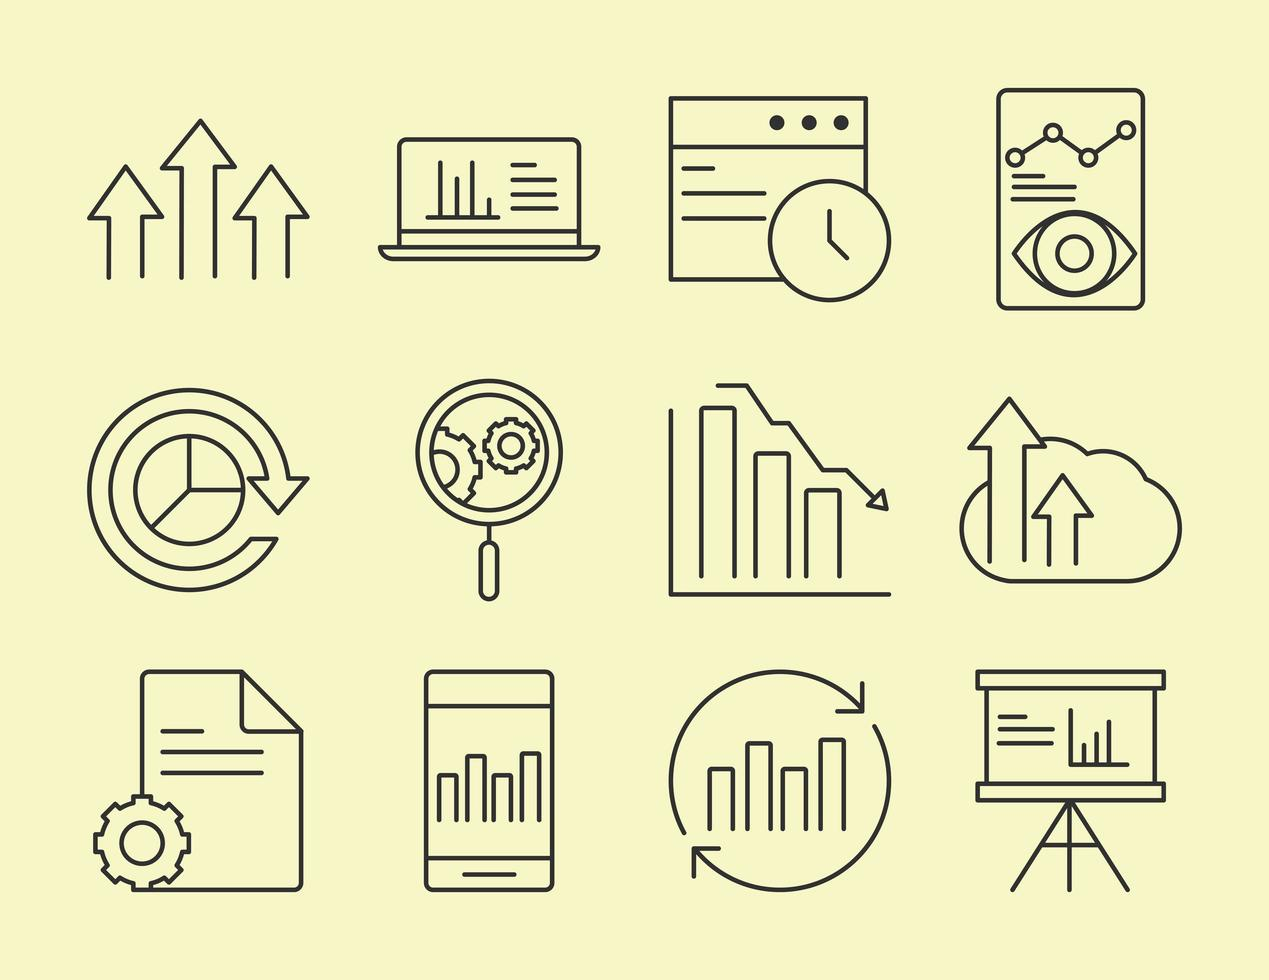 Data analysis, business, and marketing strategy icon set vector